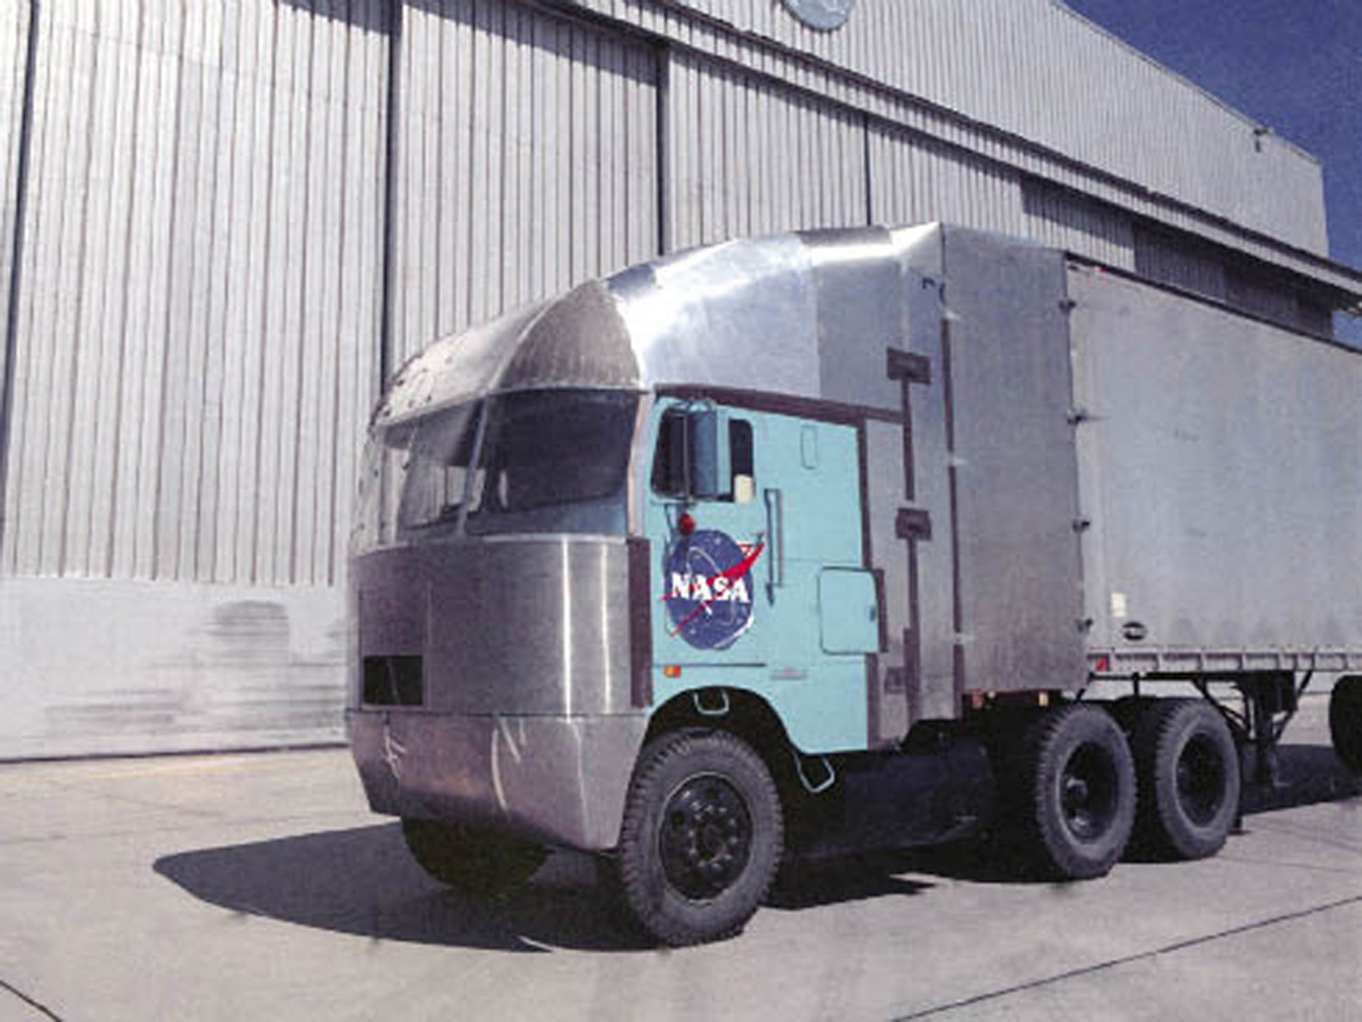 nasa truck side view - photo #2